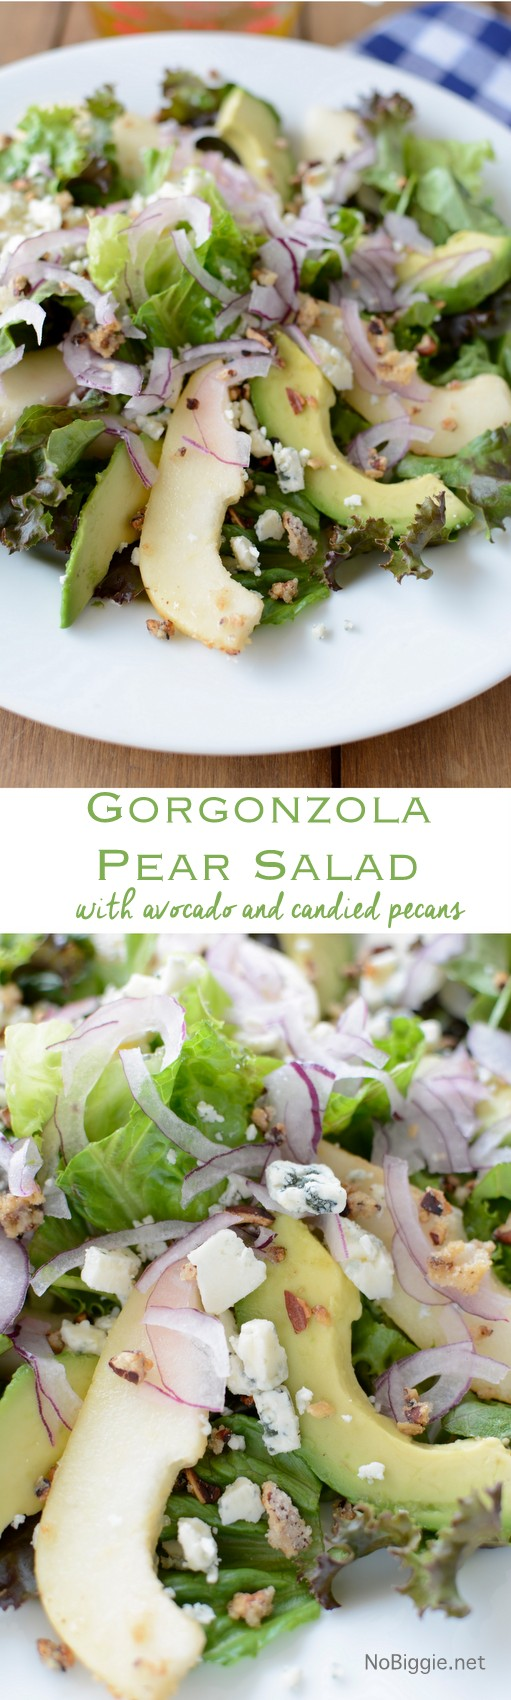 http://www.nobiggie.net/wp-content/uploads/2015/05/Gorgonzola-Pear-Salad-with-candied-pecans-NoBiggie.net_.jpg